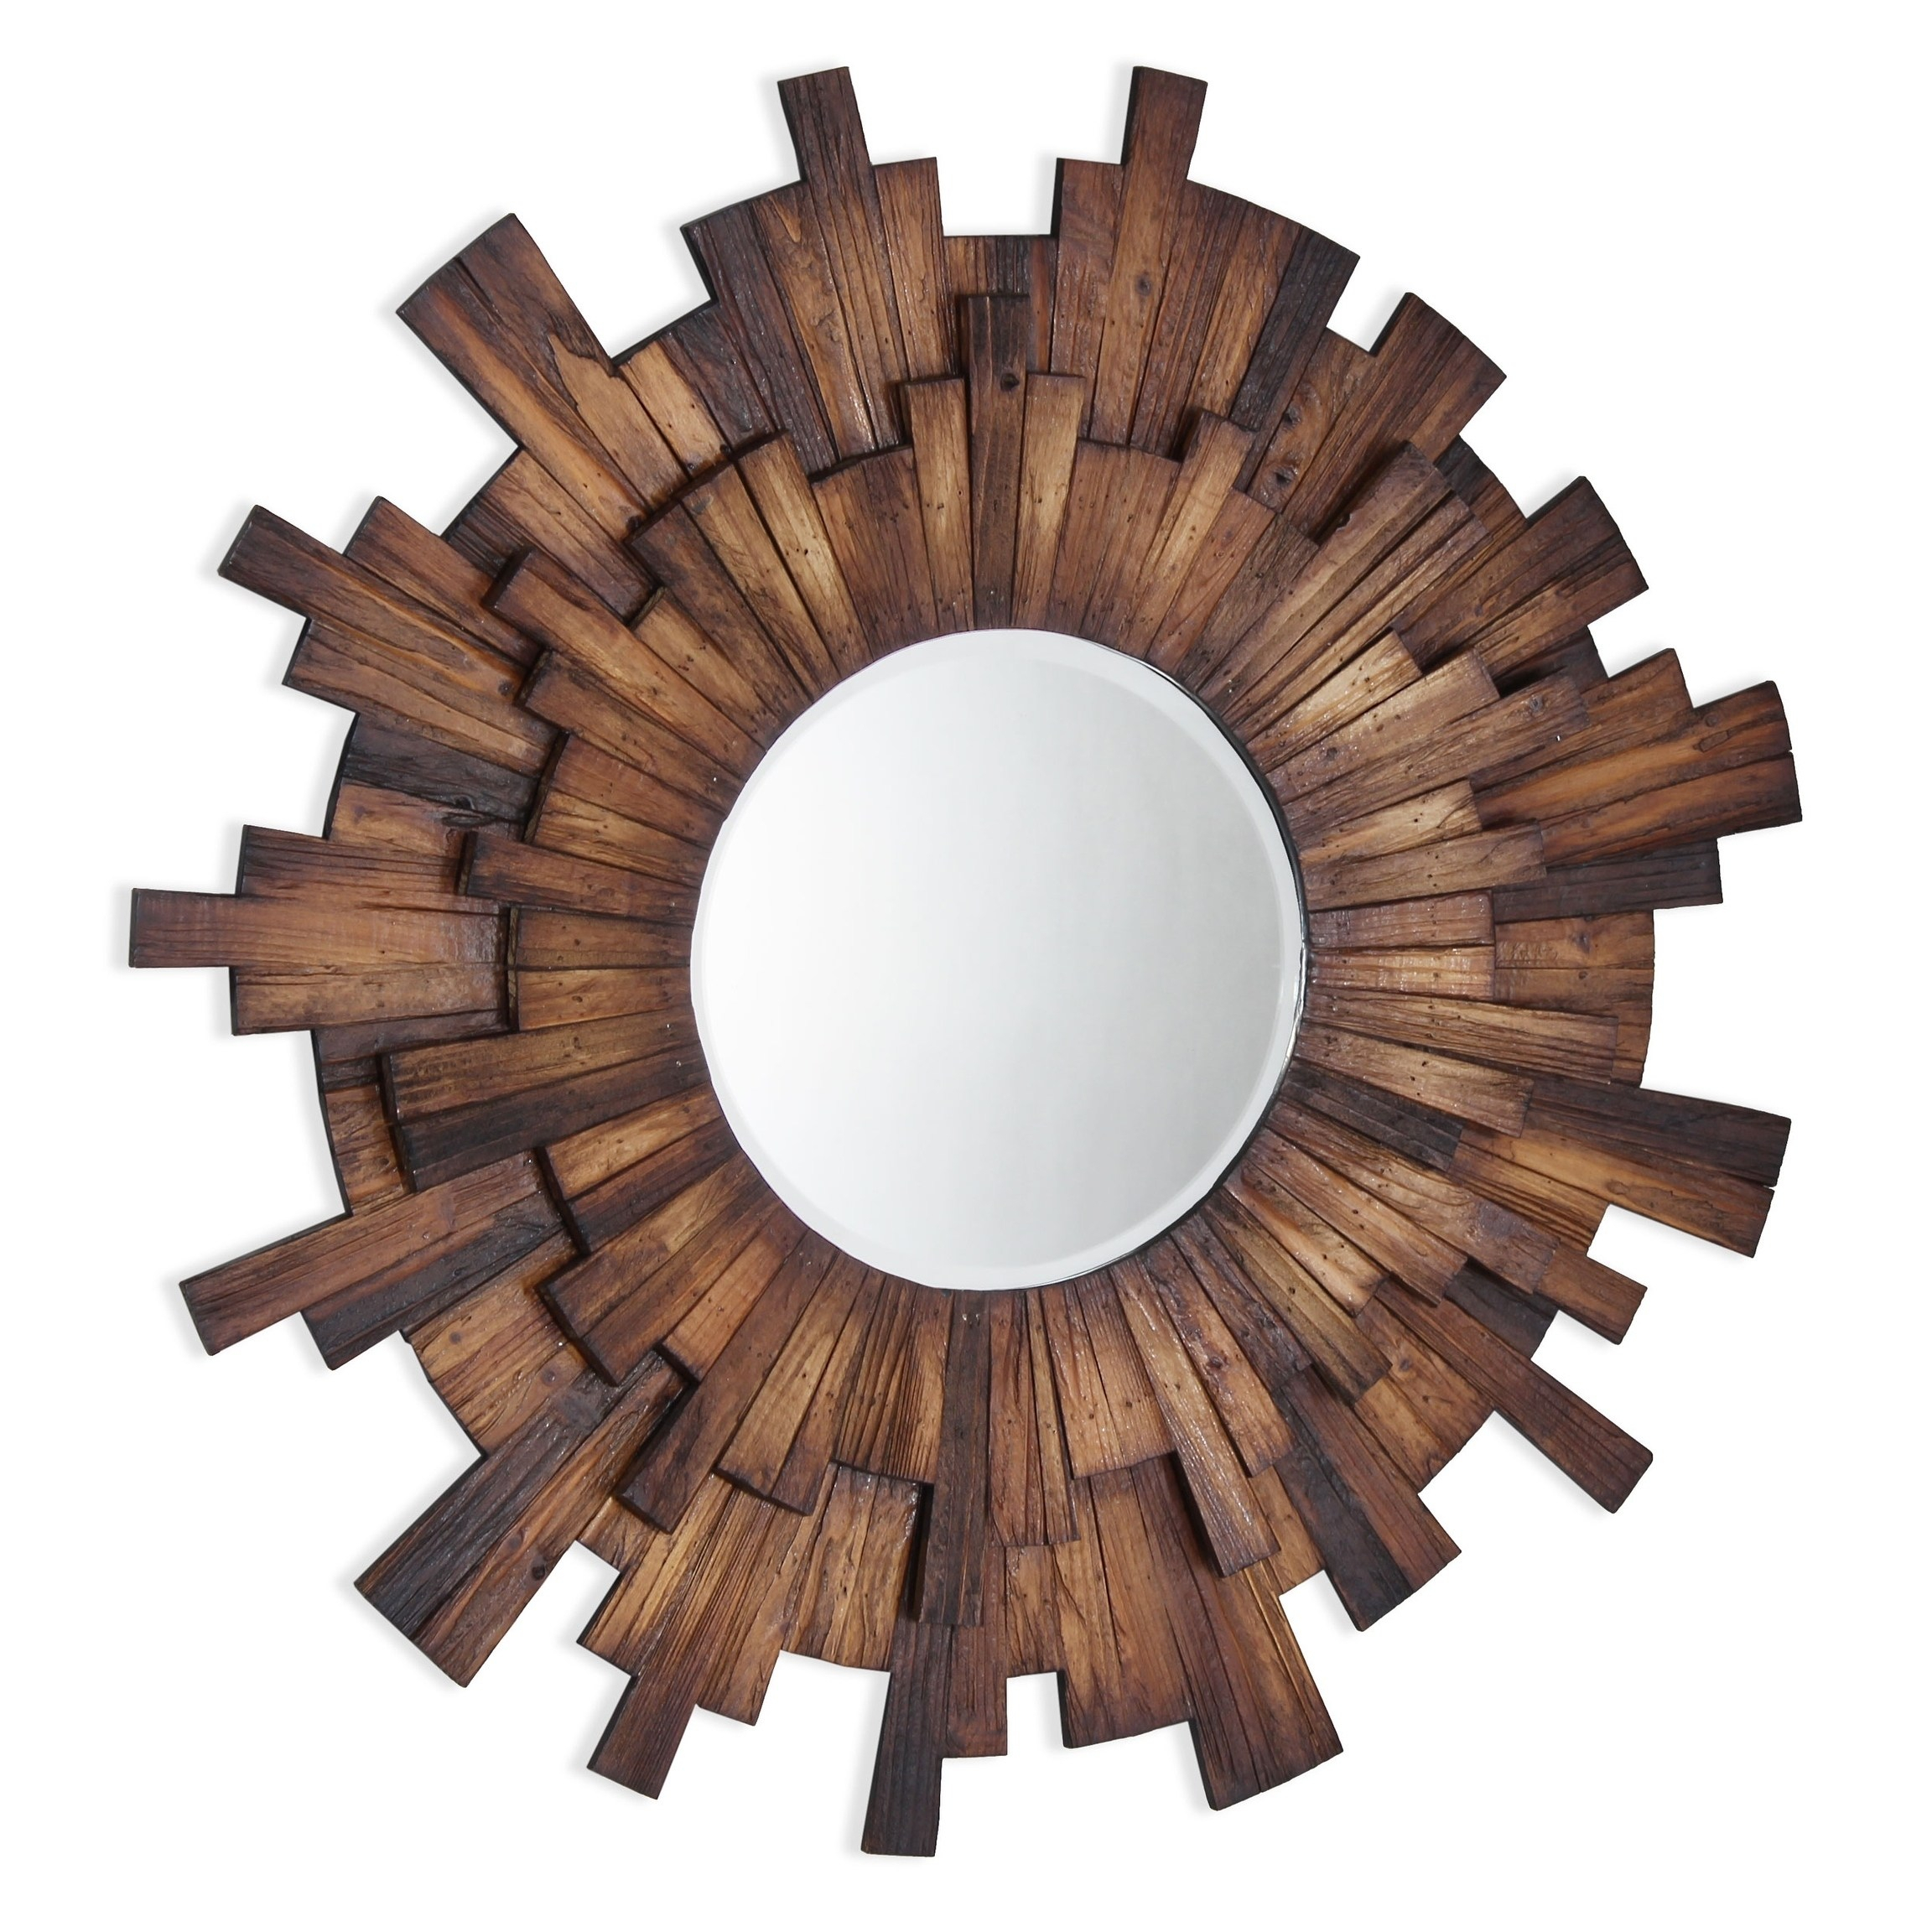 Eden Wood Framed Mirror – Brown/antique Brown – N/a/a, Gild For Perillo Burst Wood Accent Mirrors (View 14 of 20)